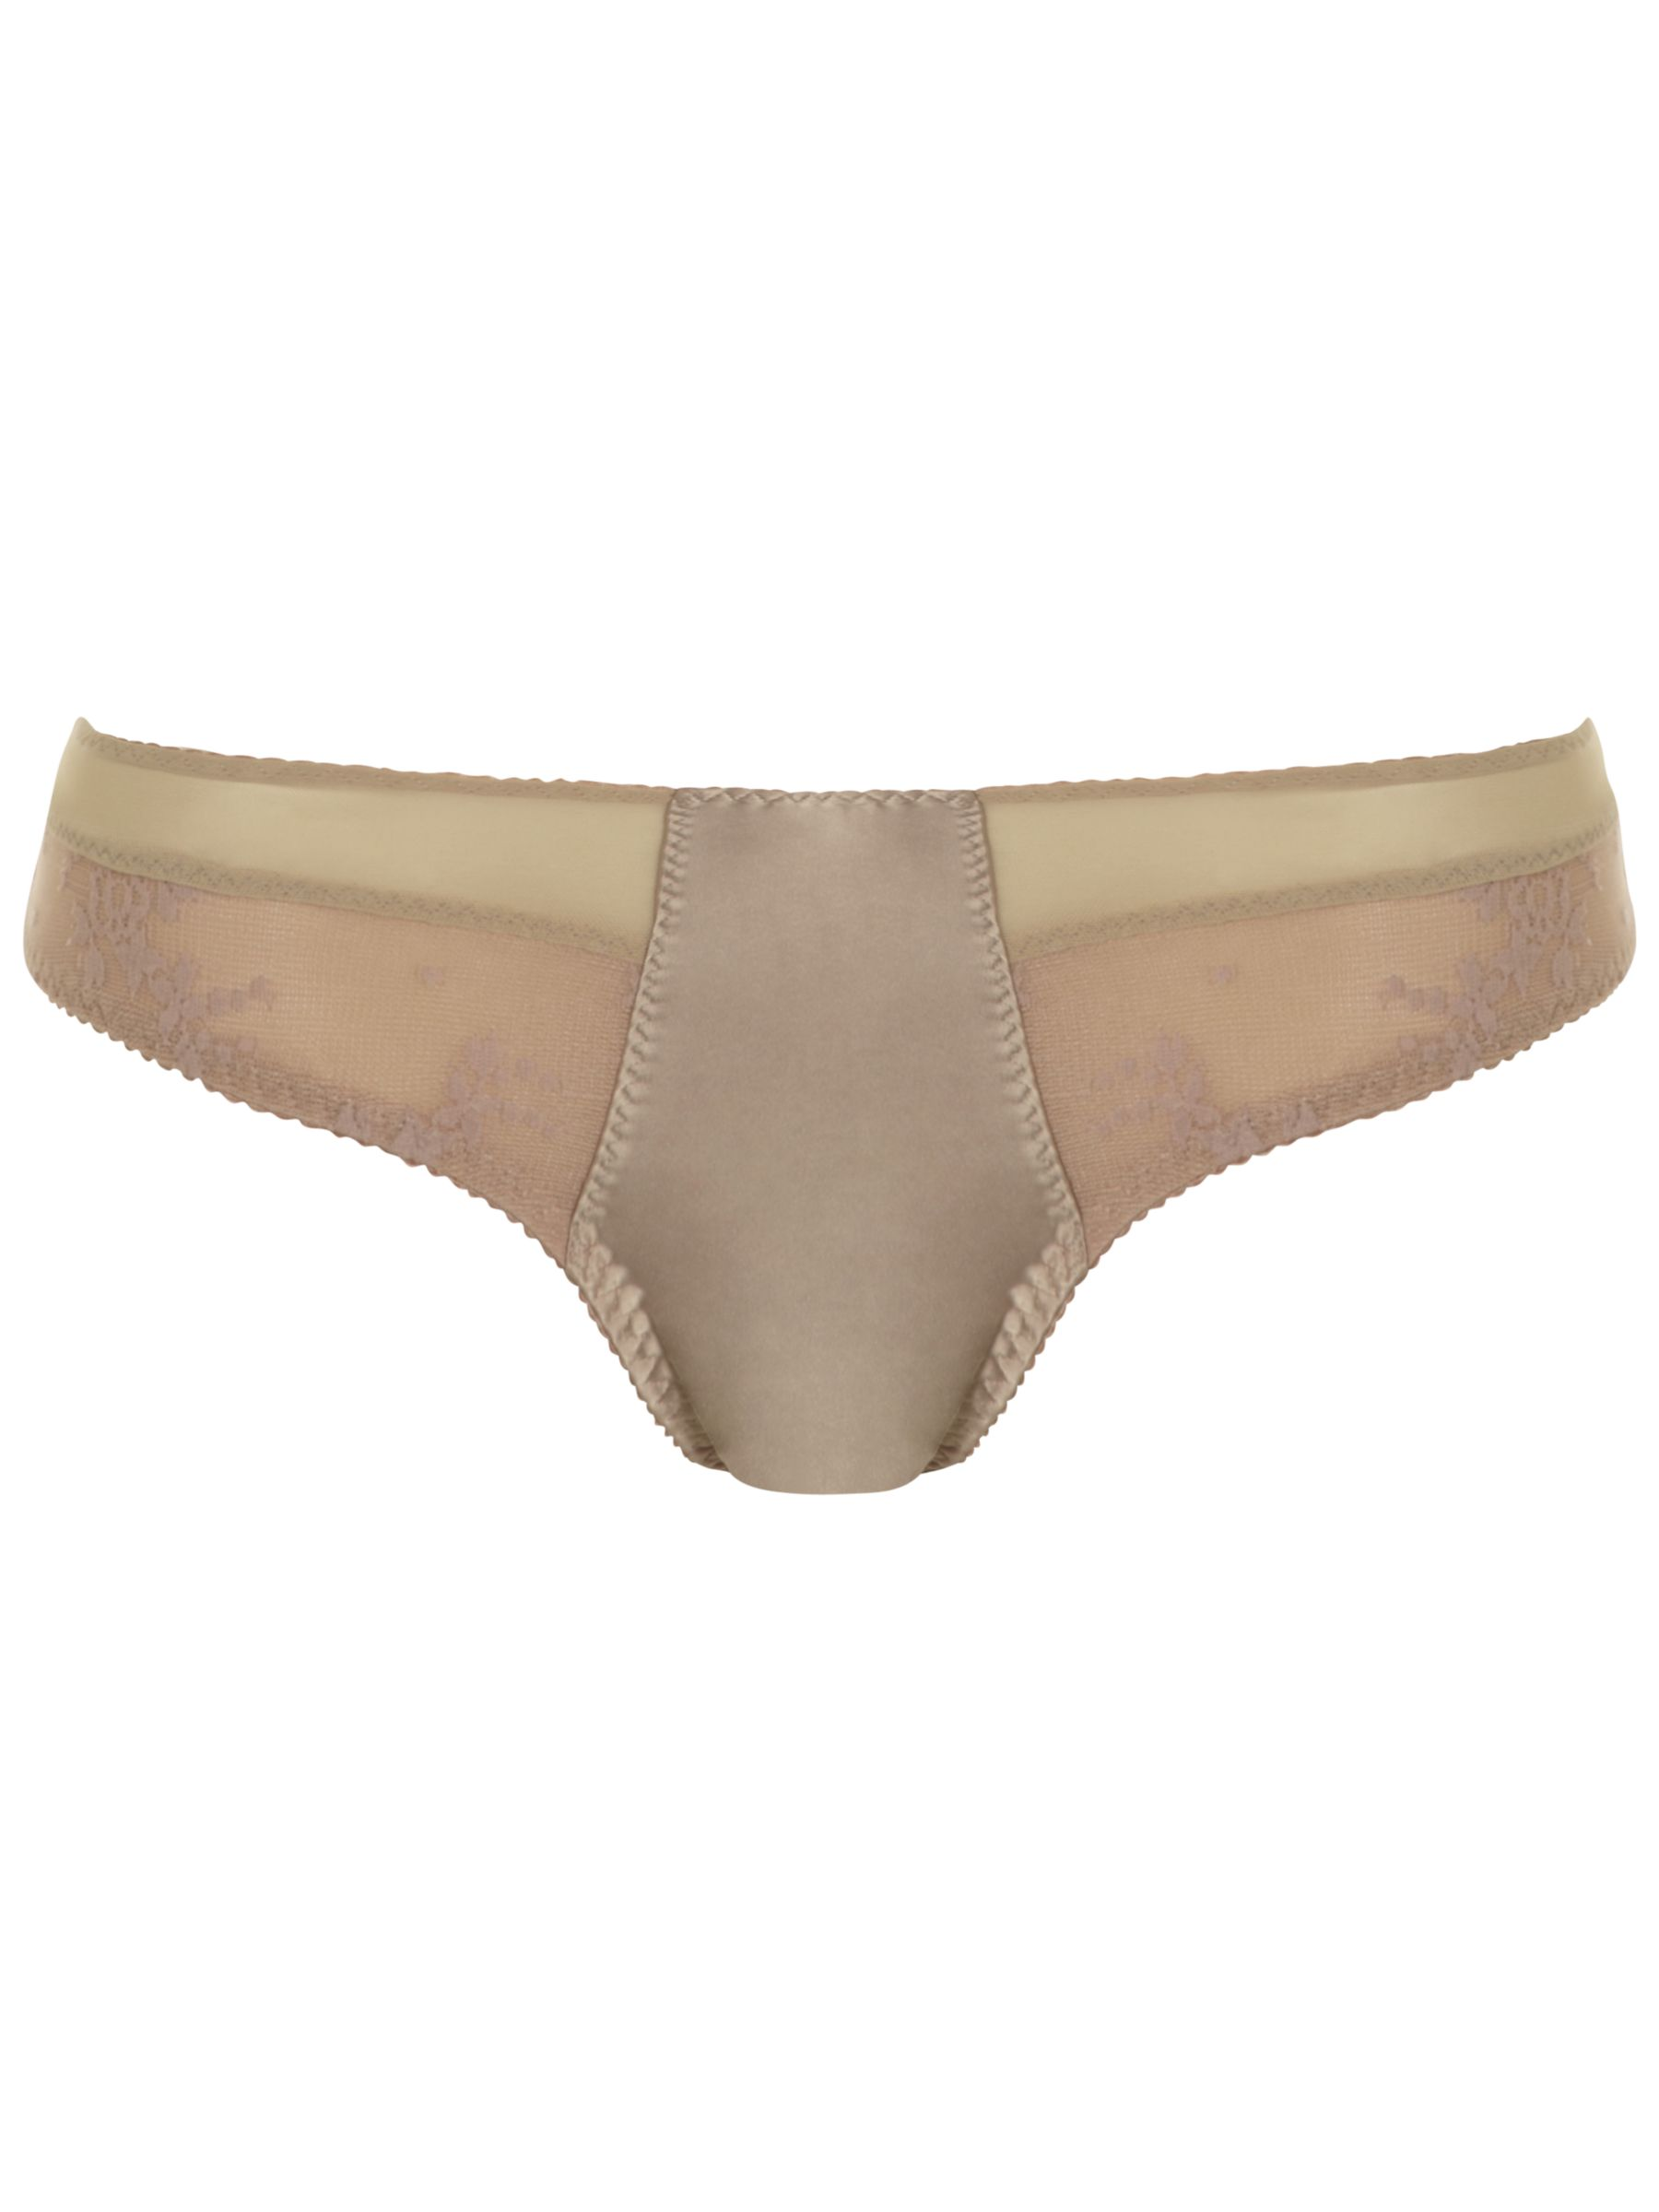 Lovable Vintage Couture Briefs, Nude Pink